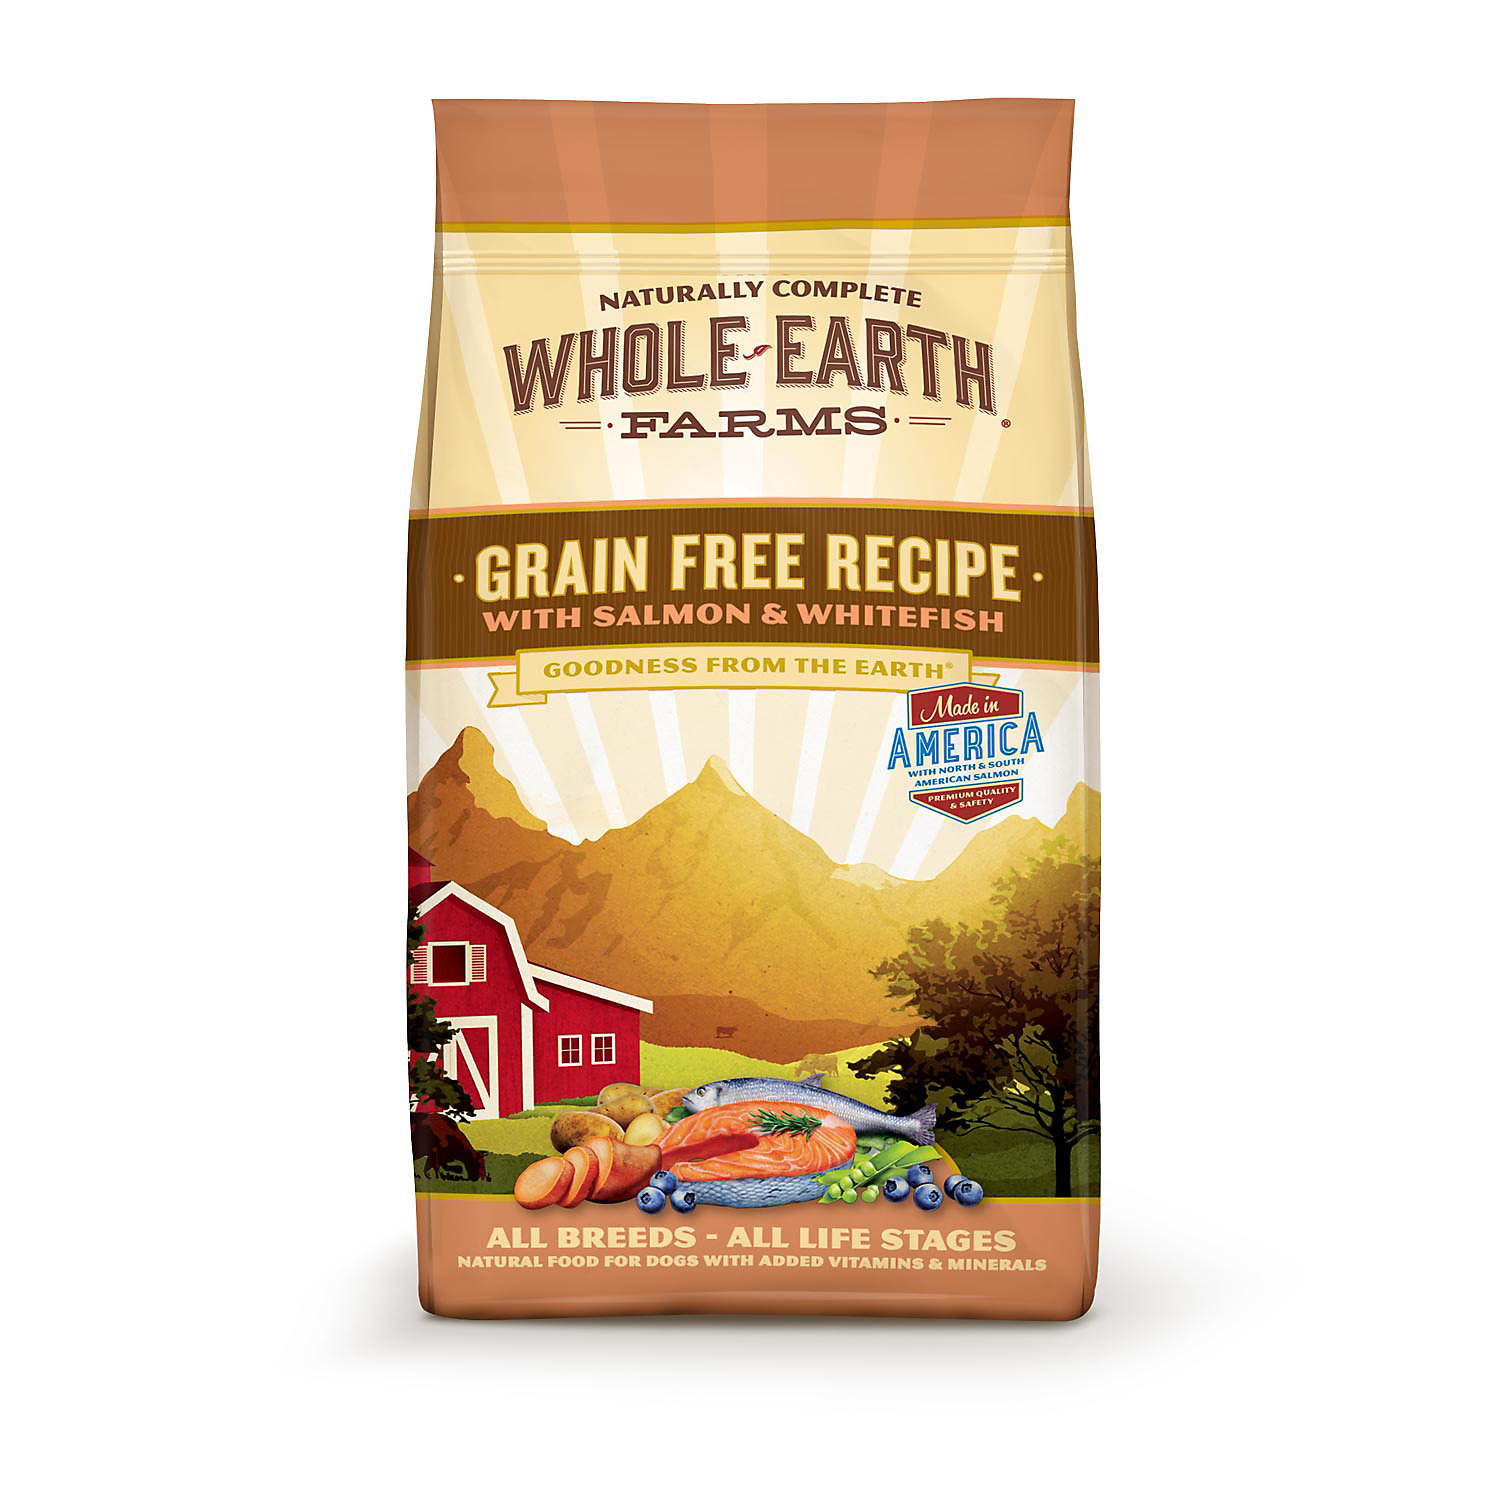 Whole Earth Farms Grain Free Salmon & Whitefish Dog Food, 12 lbs. (1/19) (A.P5)